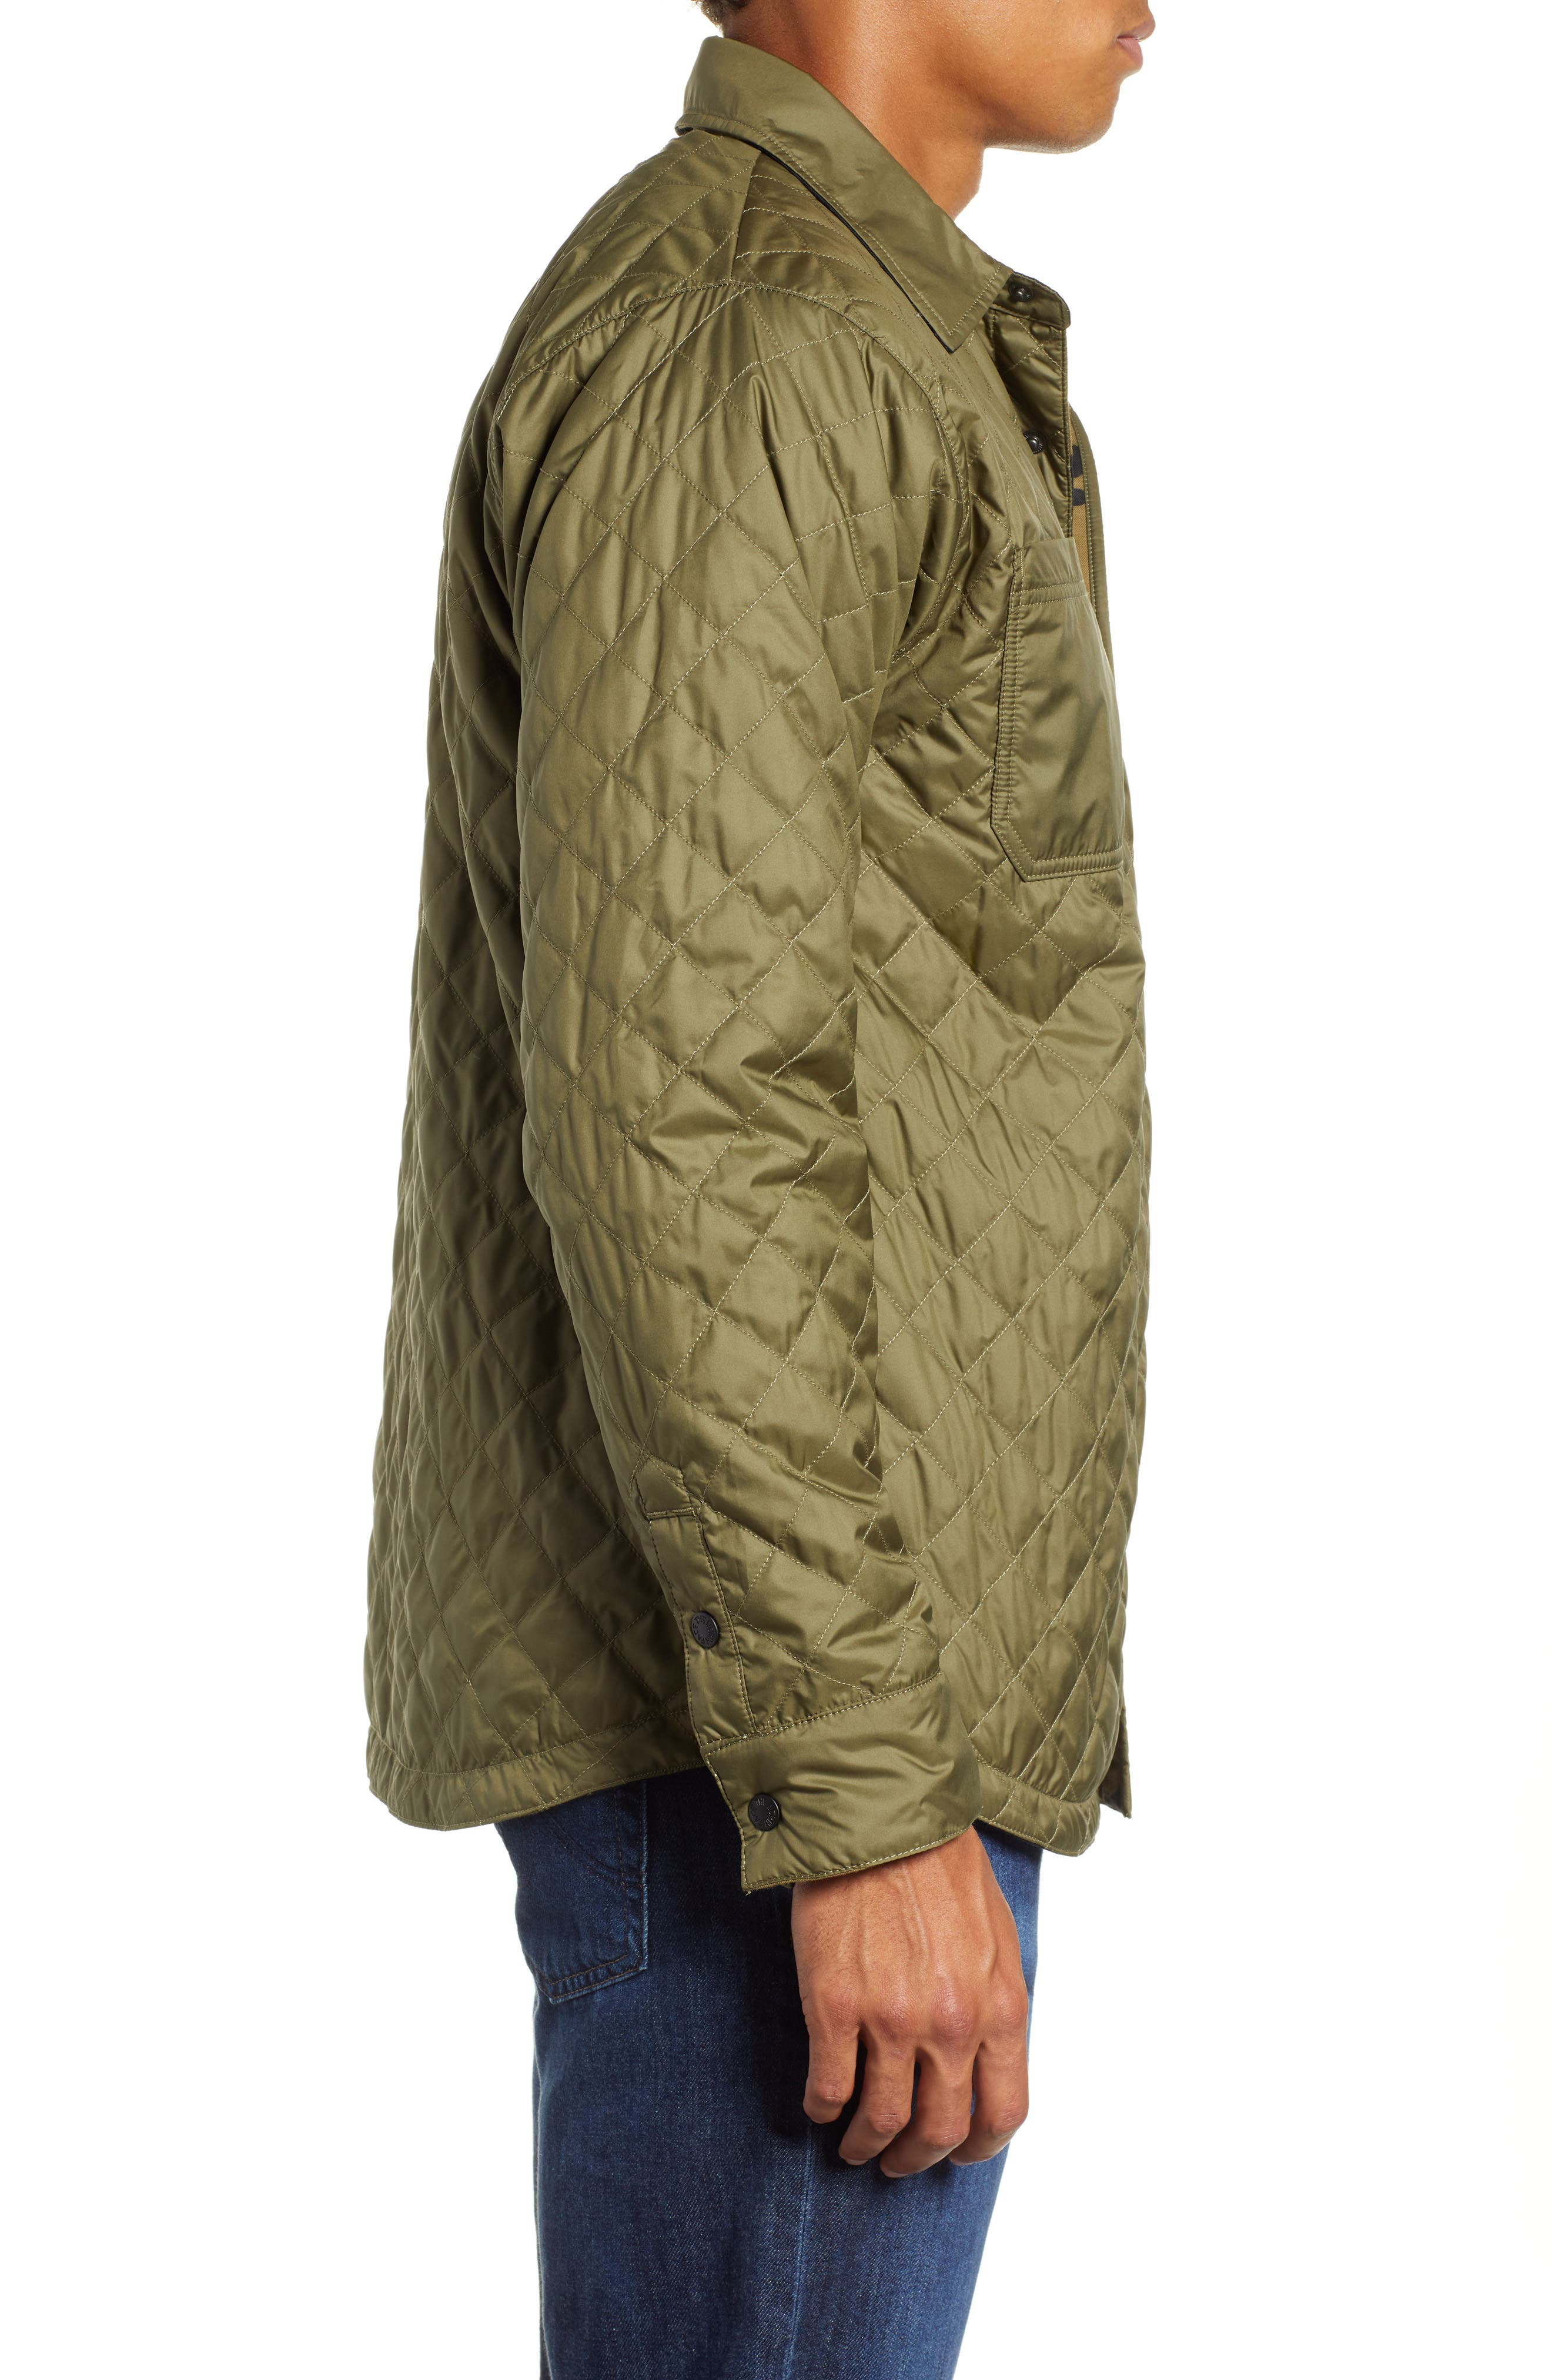 Fort Point Insulated Shirt Jacket,                             Alternate thumbnail 4, color,                             BURNT OLIVE GREEN